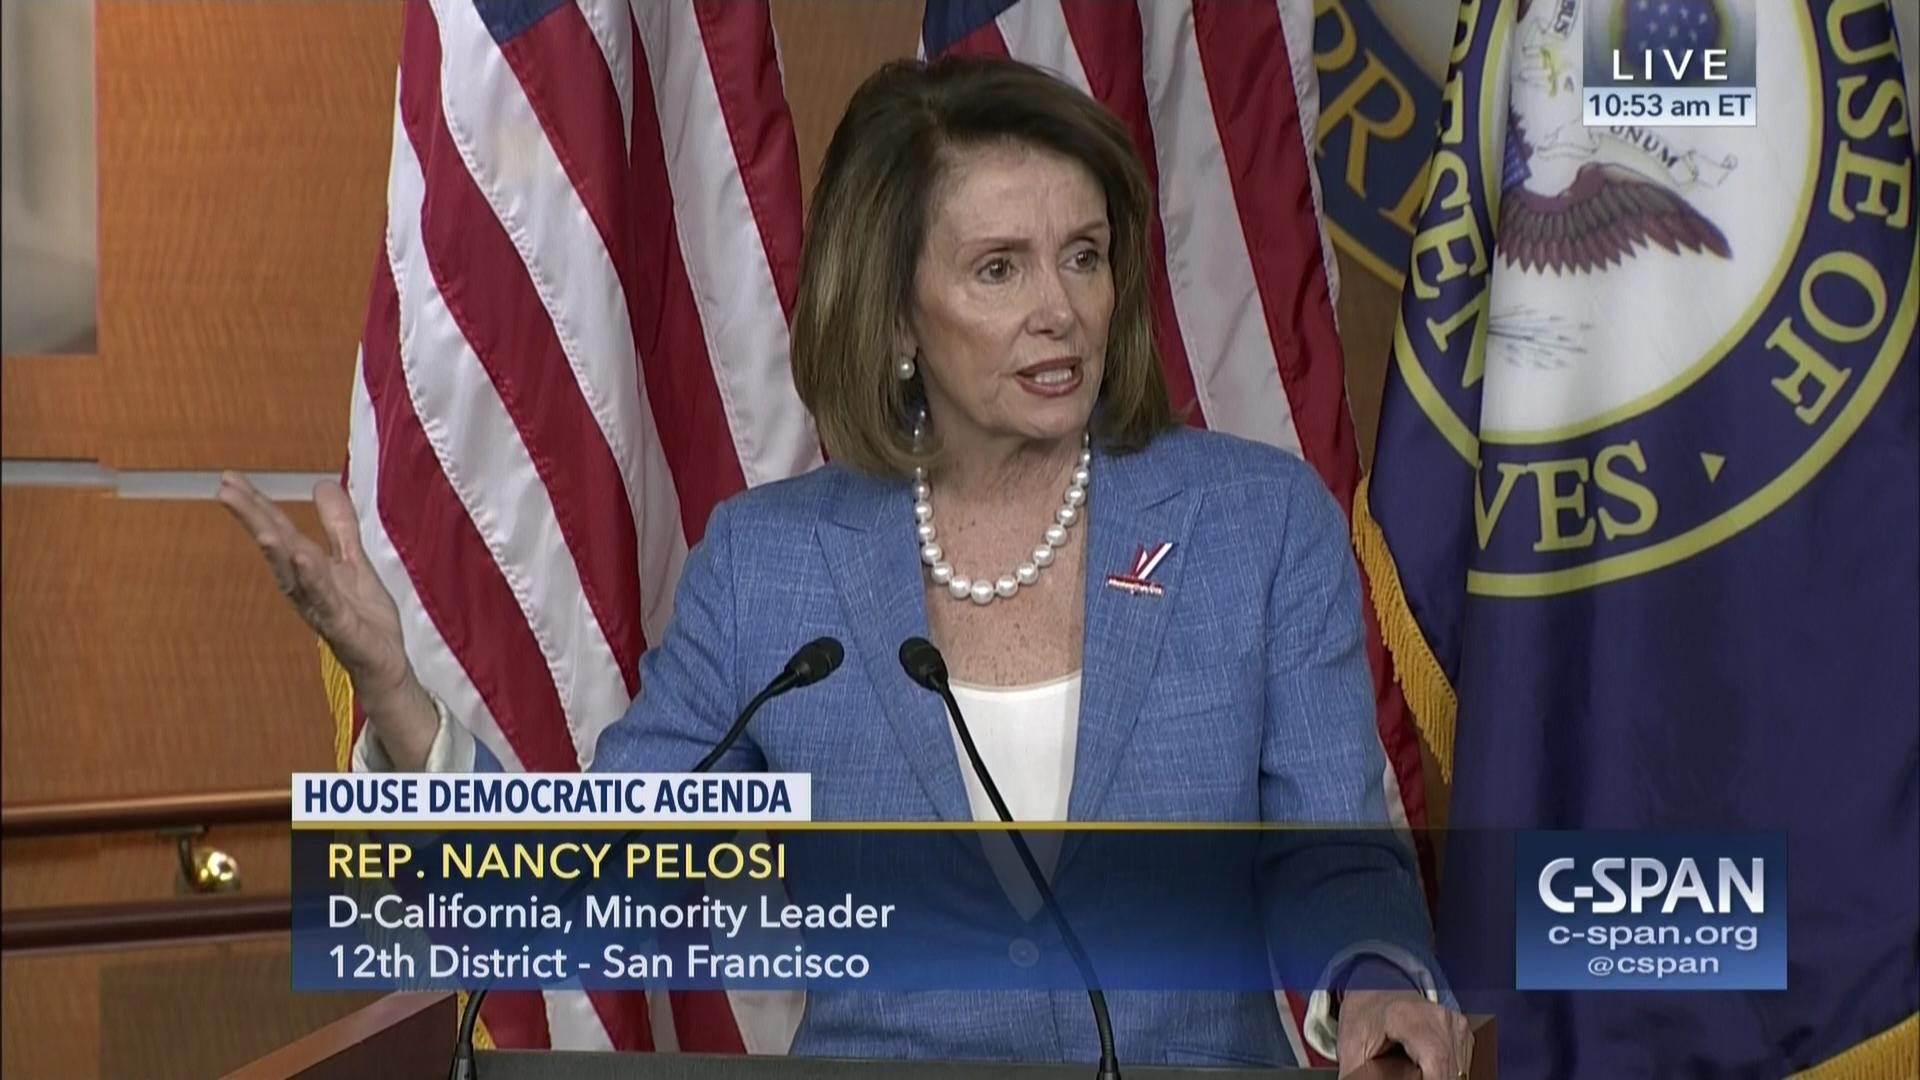 minority leader pelosi confident support caucus | c-span